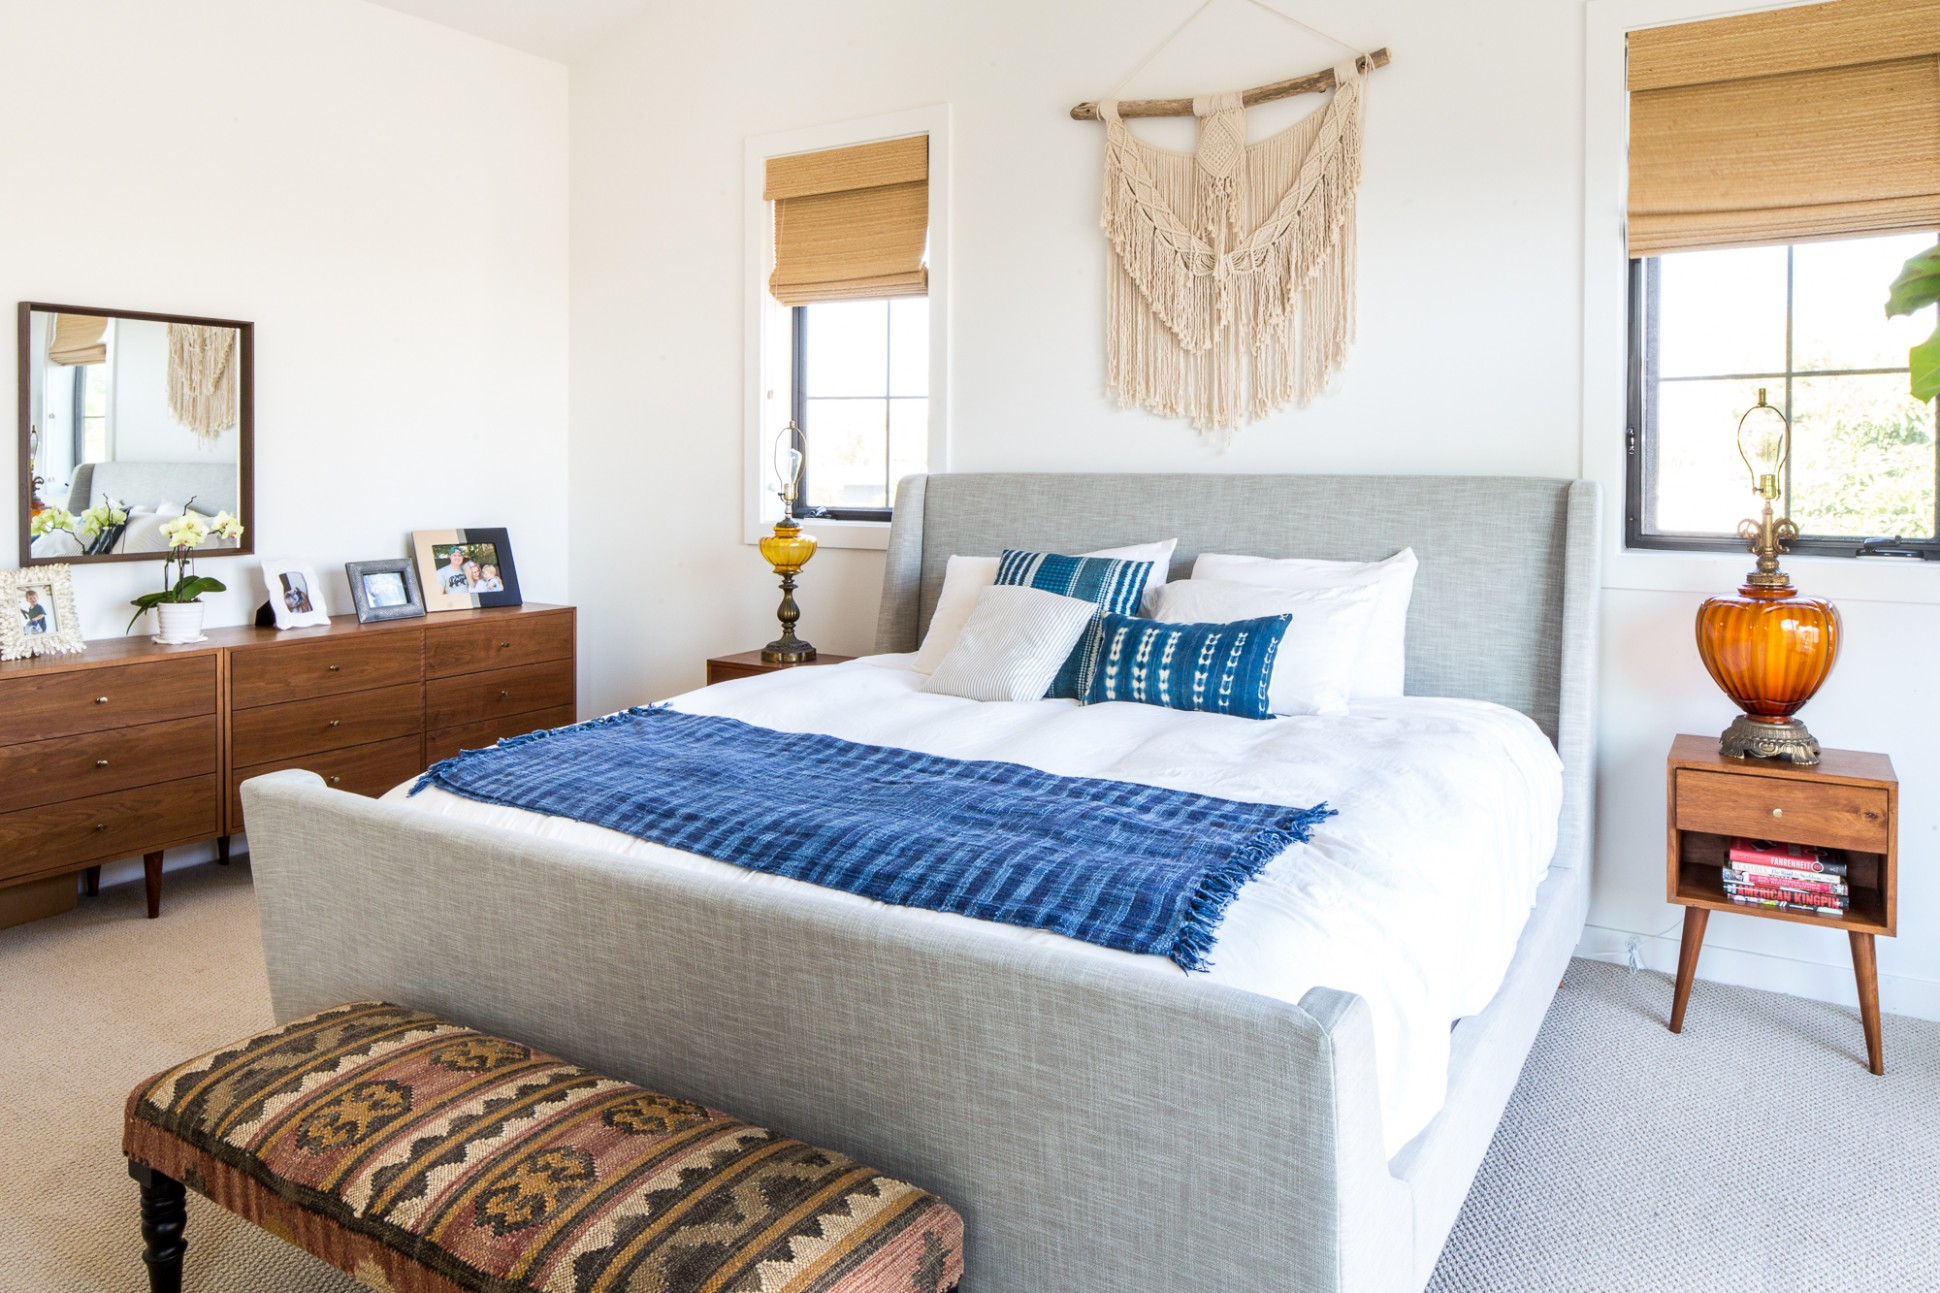 The 12 Best Bedroom Decorating Tips, According to Apartment Therapy  - Bedroom Ideas Apartment Therapy